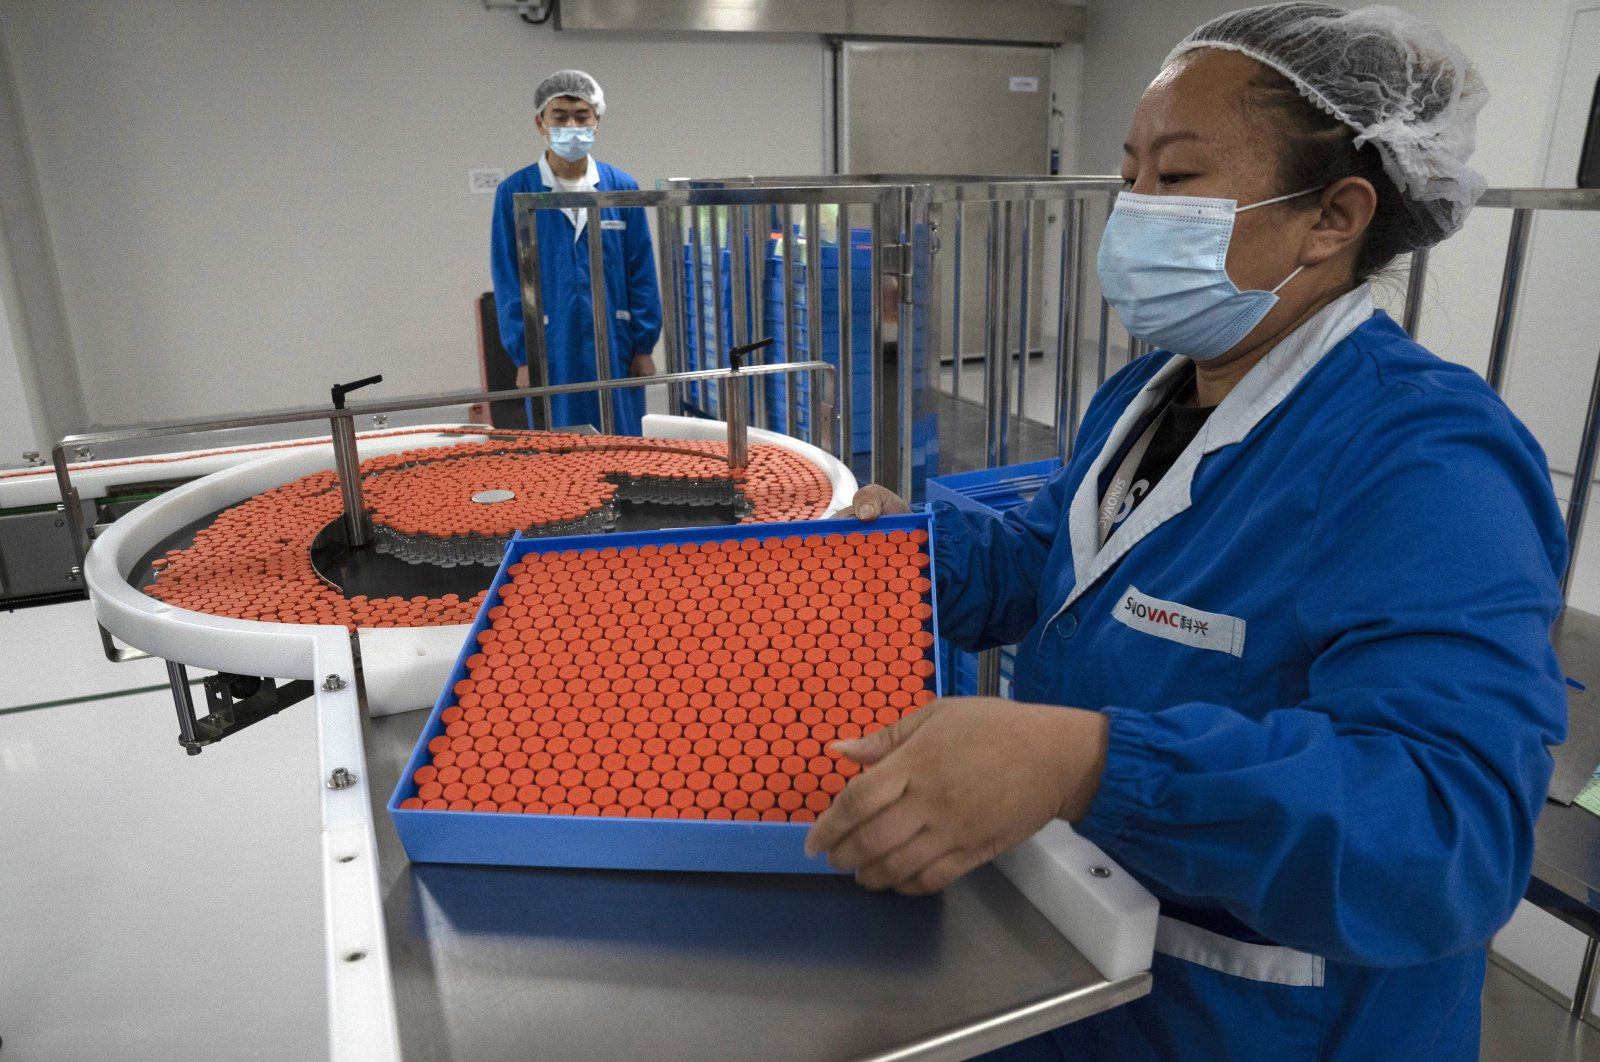 A worker feeds vials for production of SARS CoV-2 Vaccine for COVID-19 at the SinoVac vaccine factory in Beijing, Sept. 24, 2020. (AP Photo)